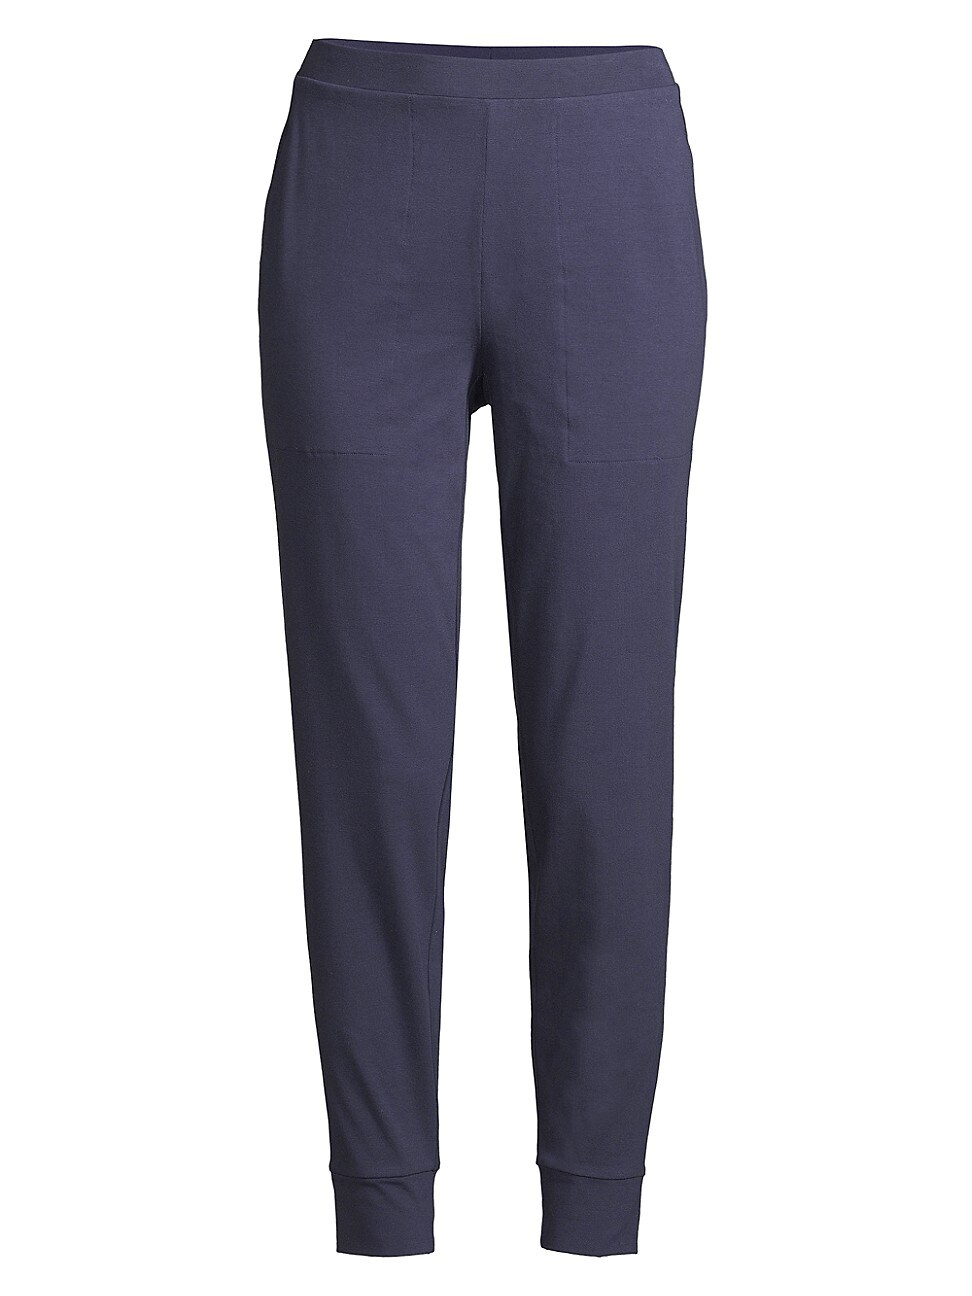 EILEEN FISHER WOMEN'S TAPERED ANKLE PANTS